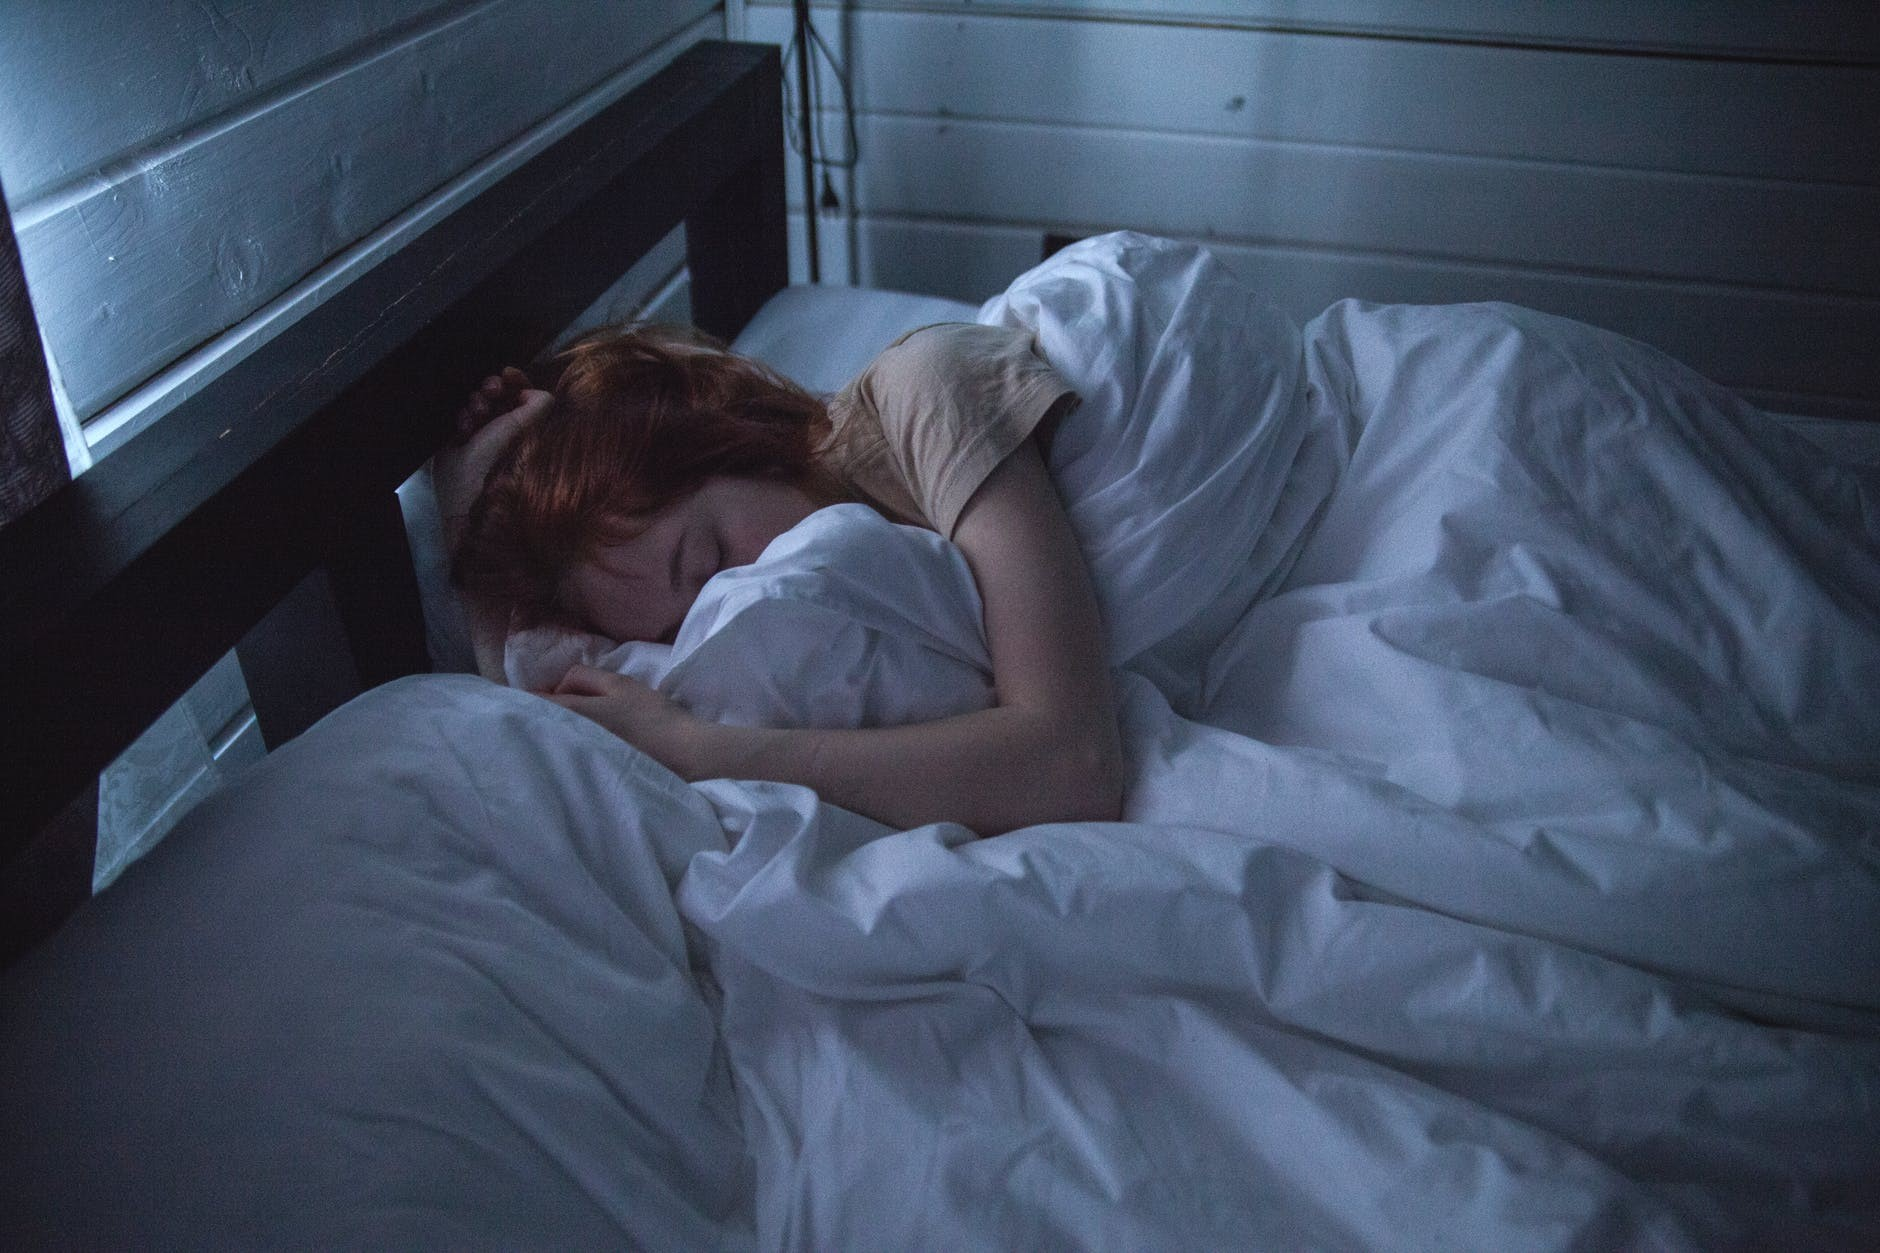 A young woman sleeps on a double bed in a dark room, her face buried in the covers.